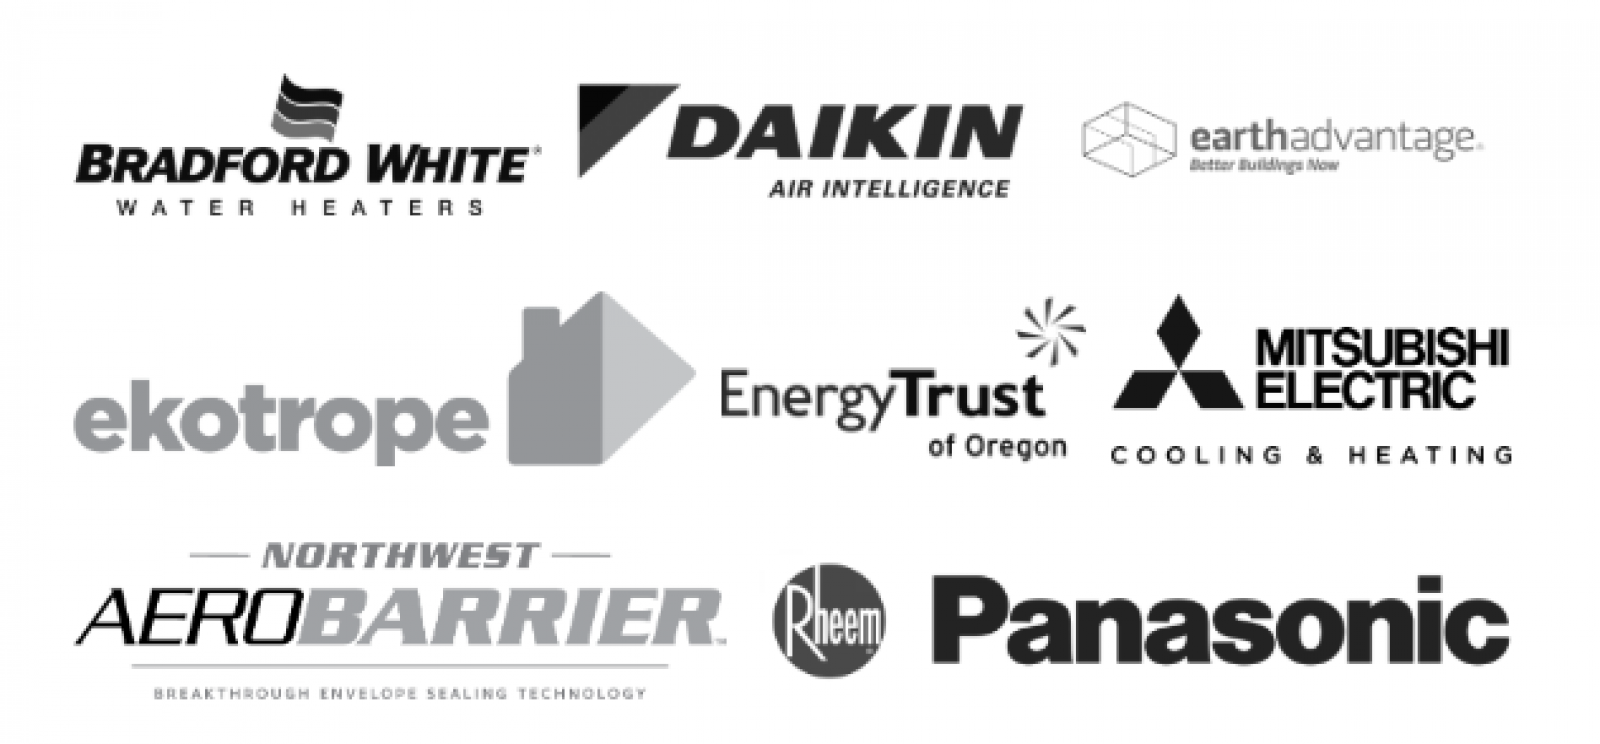 List of sponsor logos including: Bradford White Water Heaters, Daikin Air Intellegence, Earth Advantage, Ekotrope, Energy Trust of Oregon, Mitsubishi Electric, Aero Barrier, Rheem, and Panasonic.